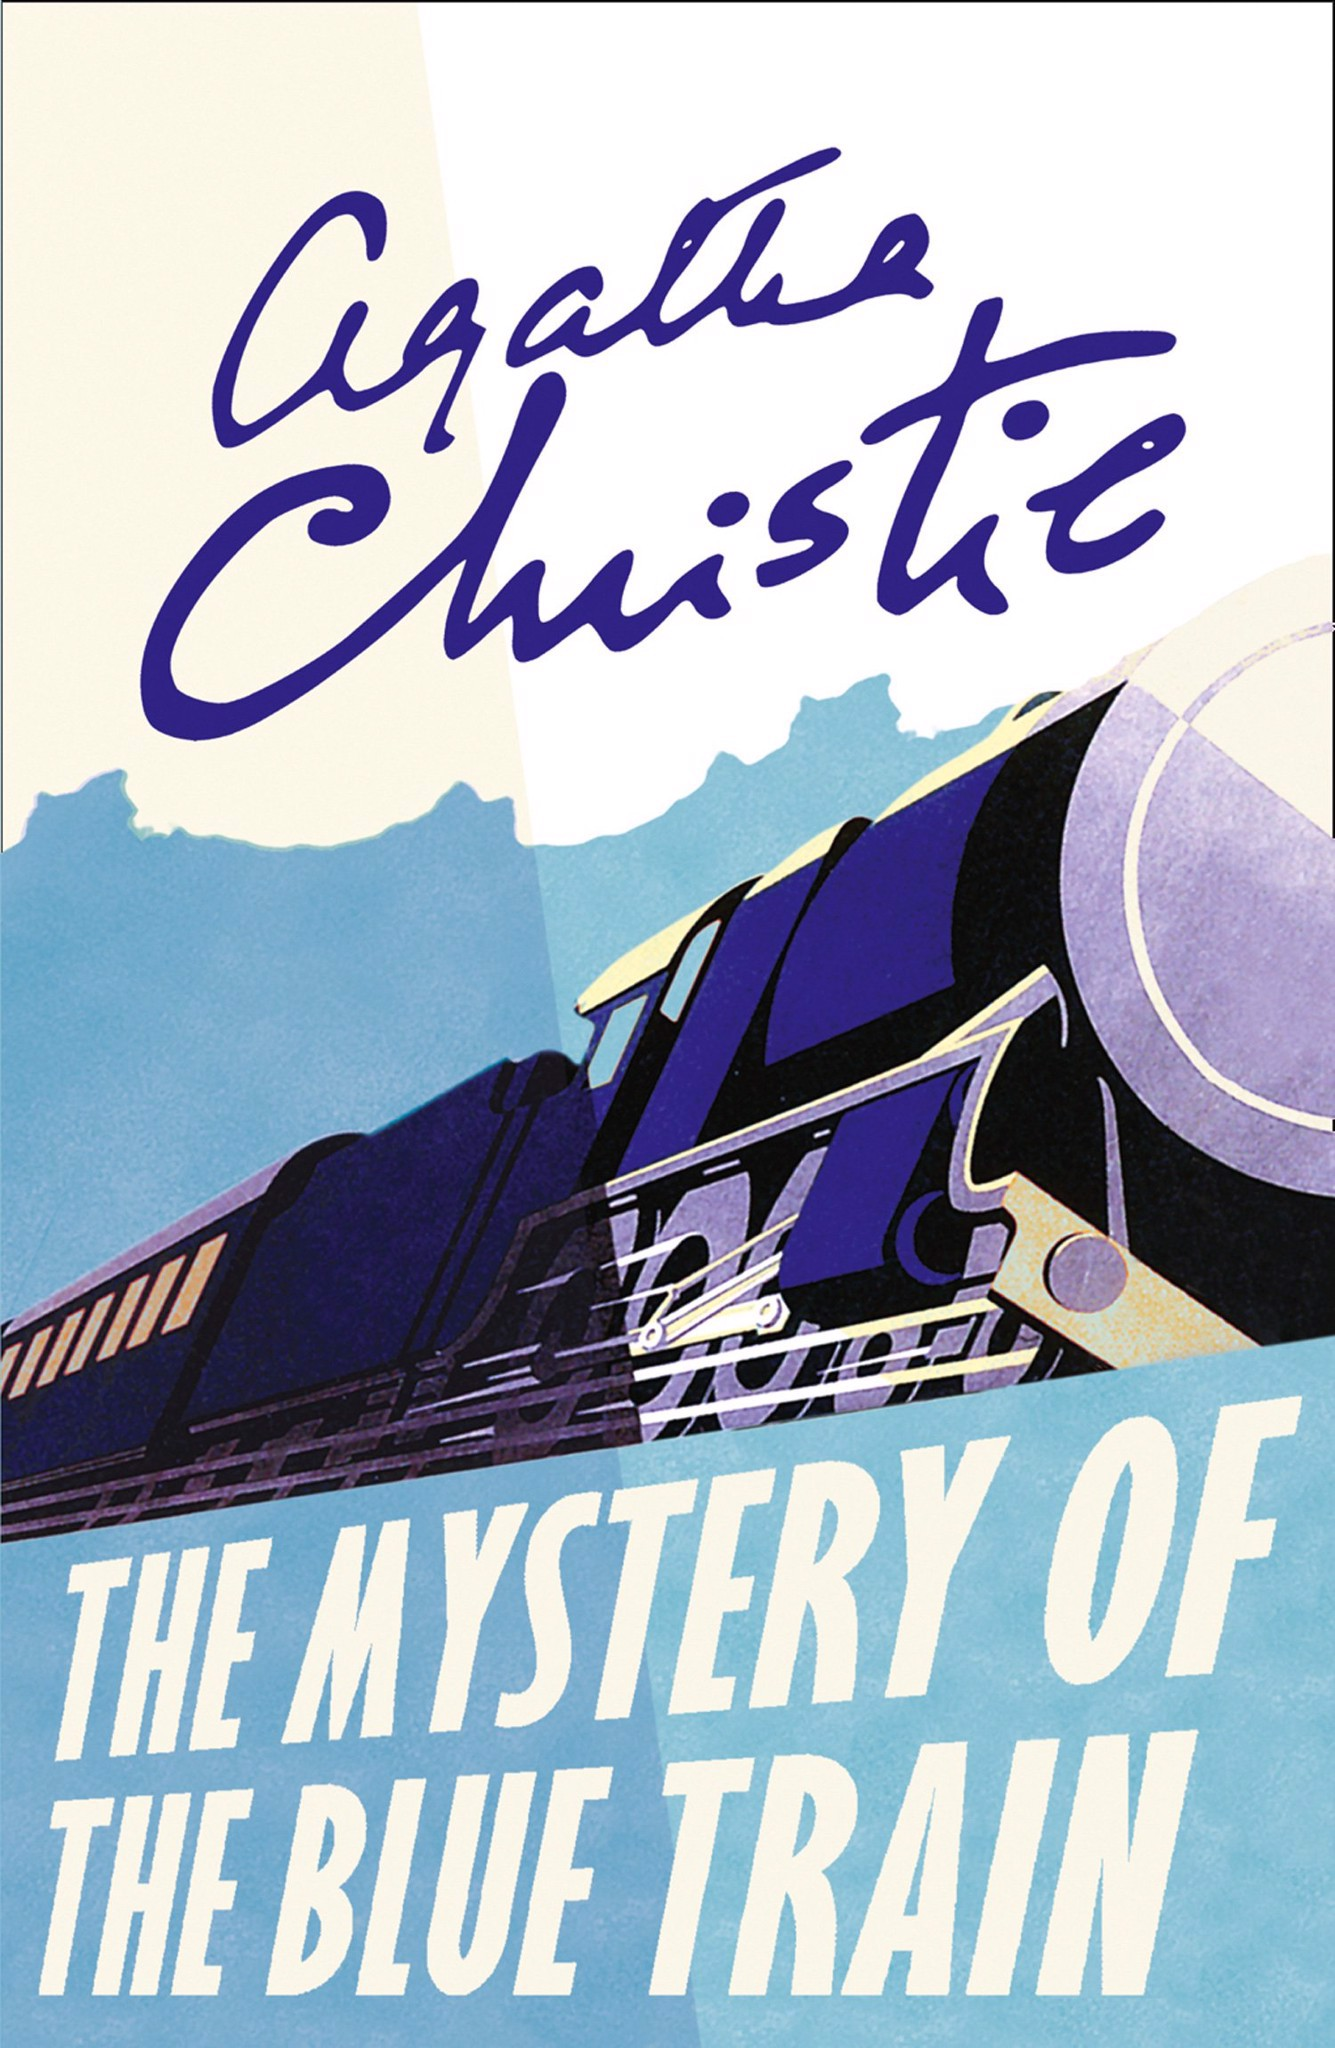 Poirot — THE MYSTERY OF THE BLUE TRAIN